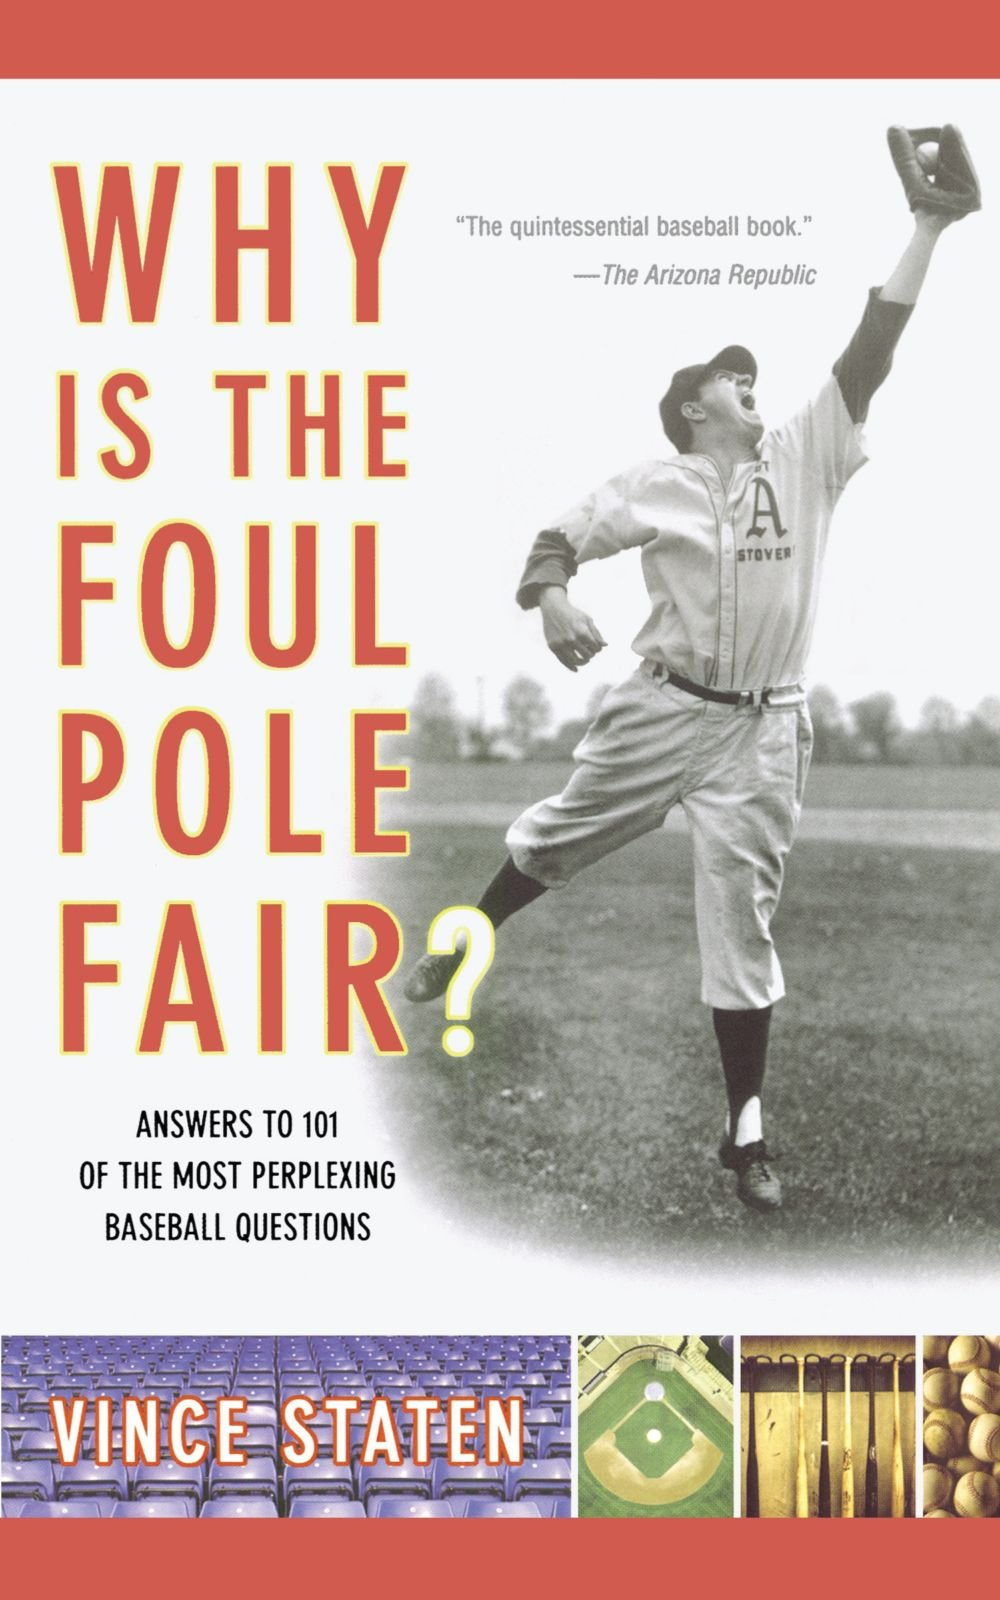 why is the foul pole fair answers to of the most perplexing why is the foul pole fair answers to 101 of the most perplexing baseball questions vince staten 9780743257916 com books